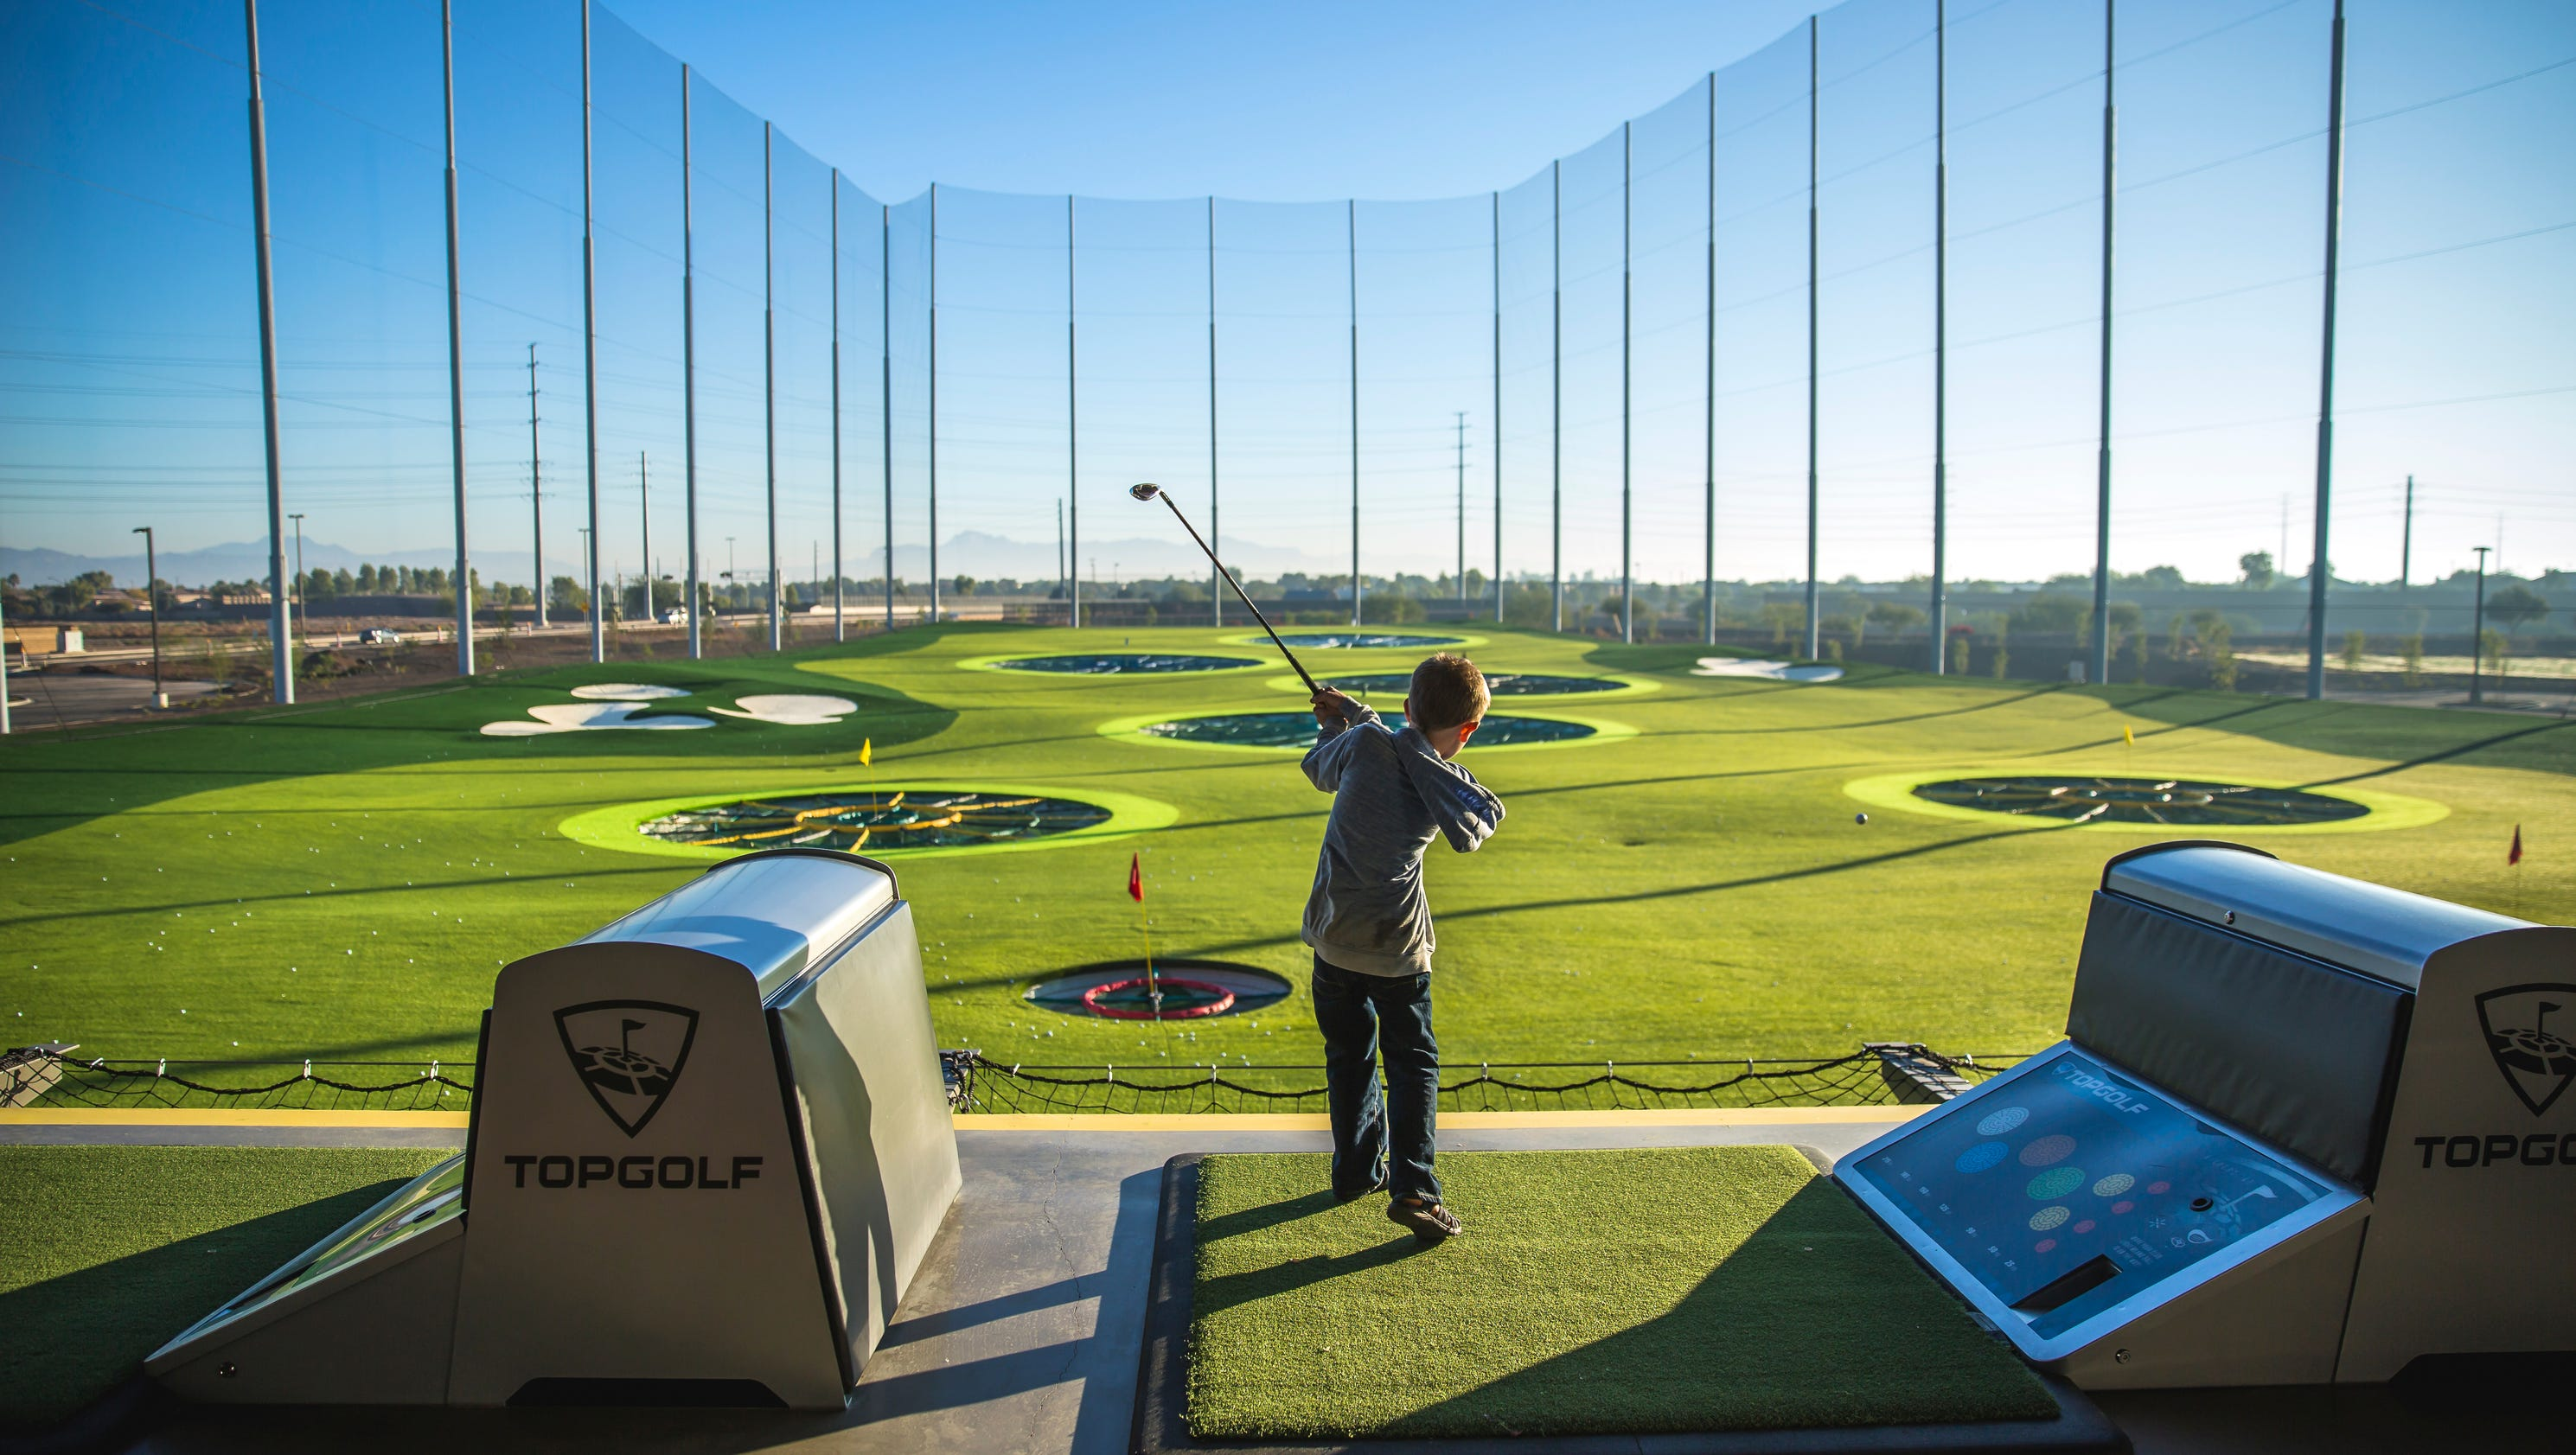 Tee Time Delayed For Fishers Topgolf